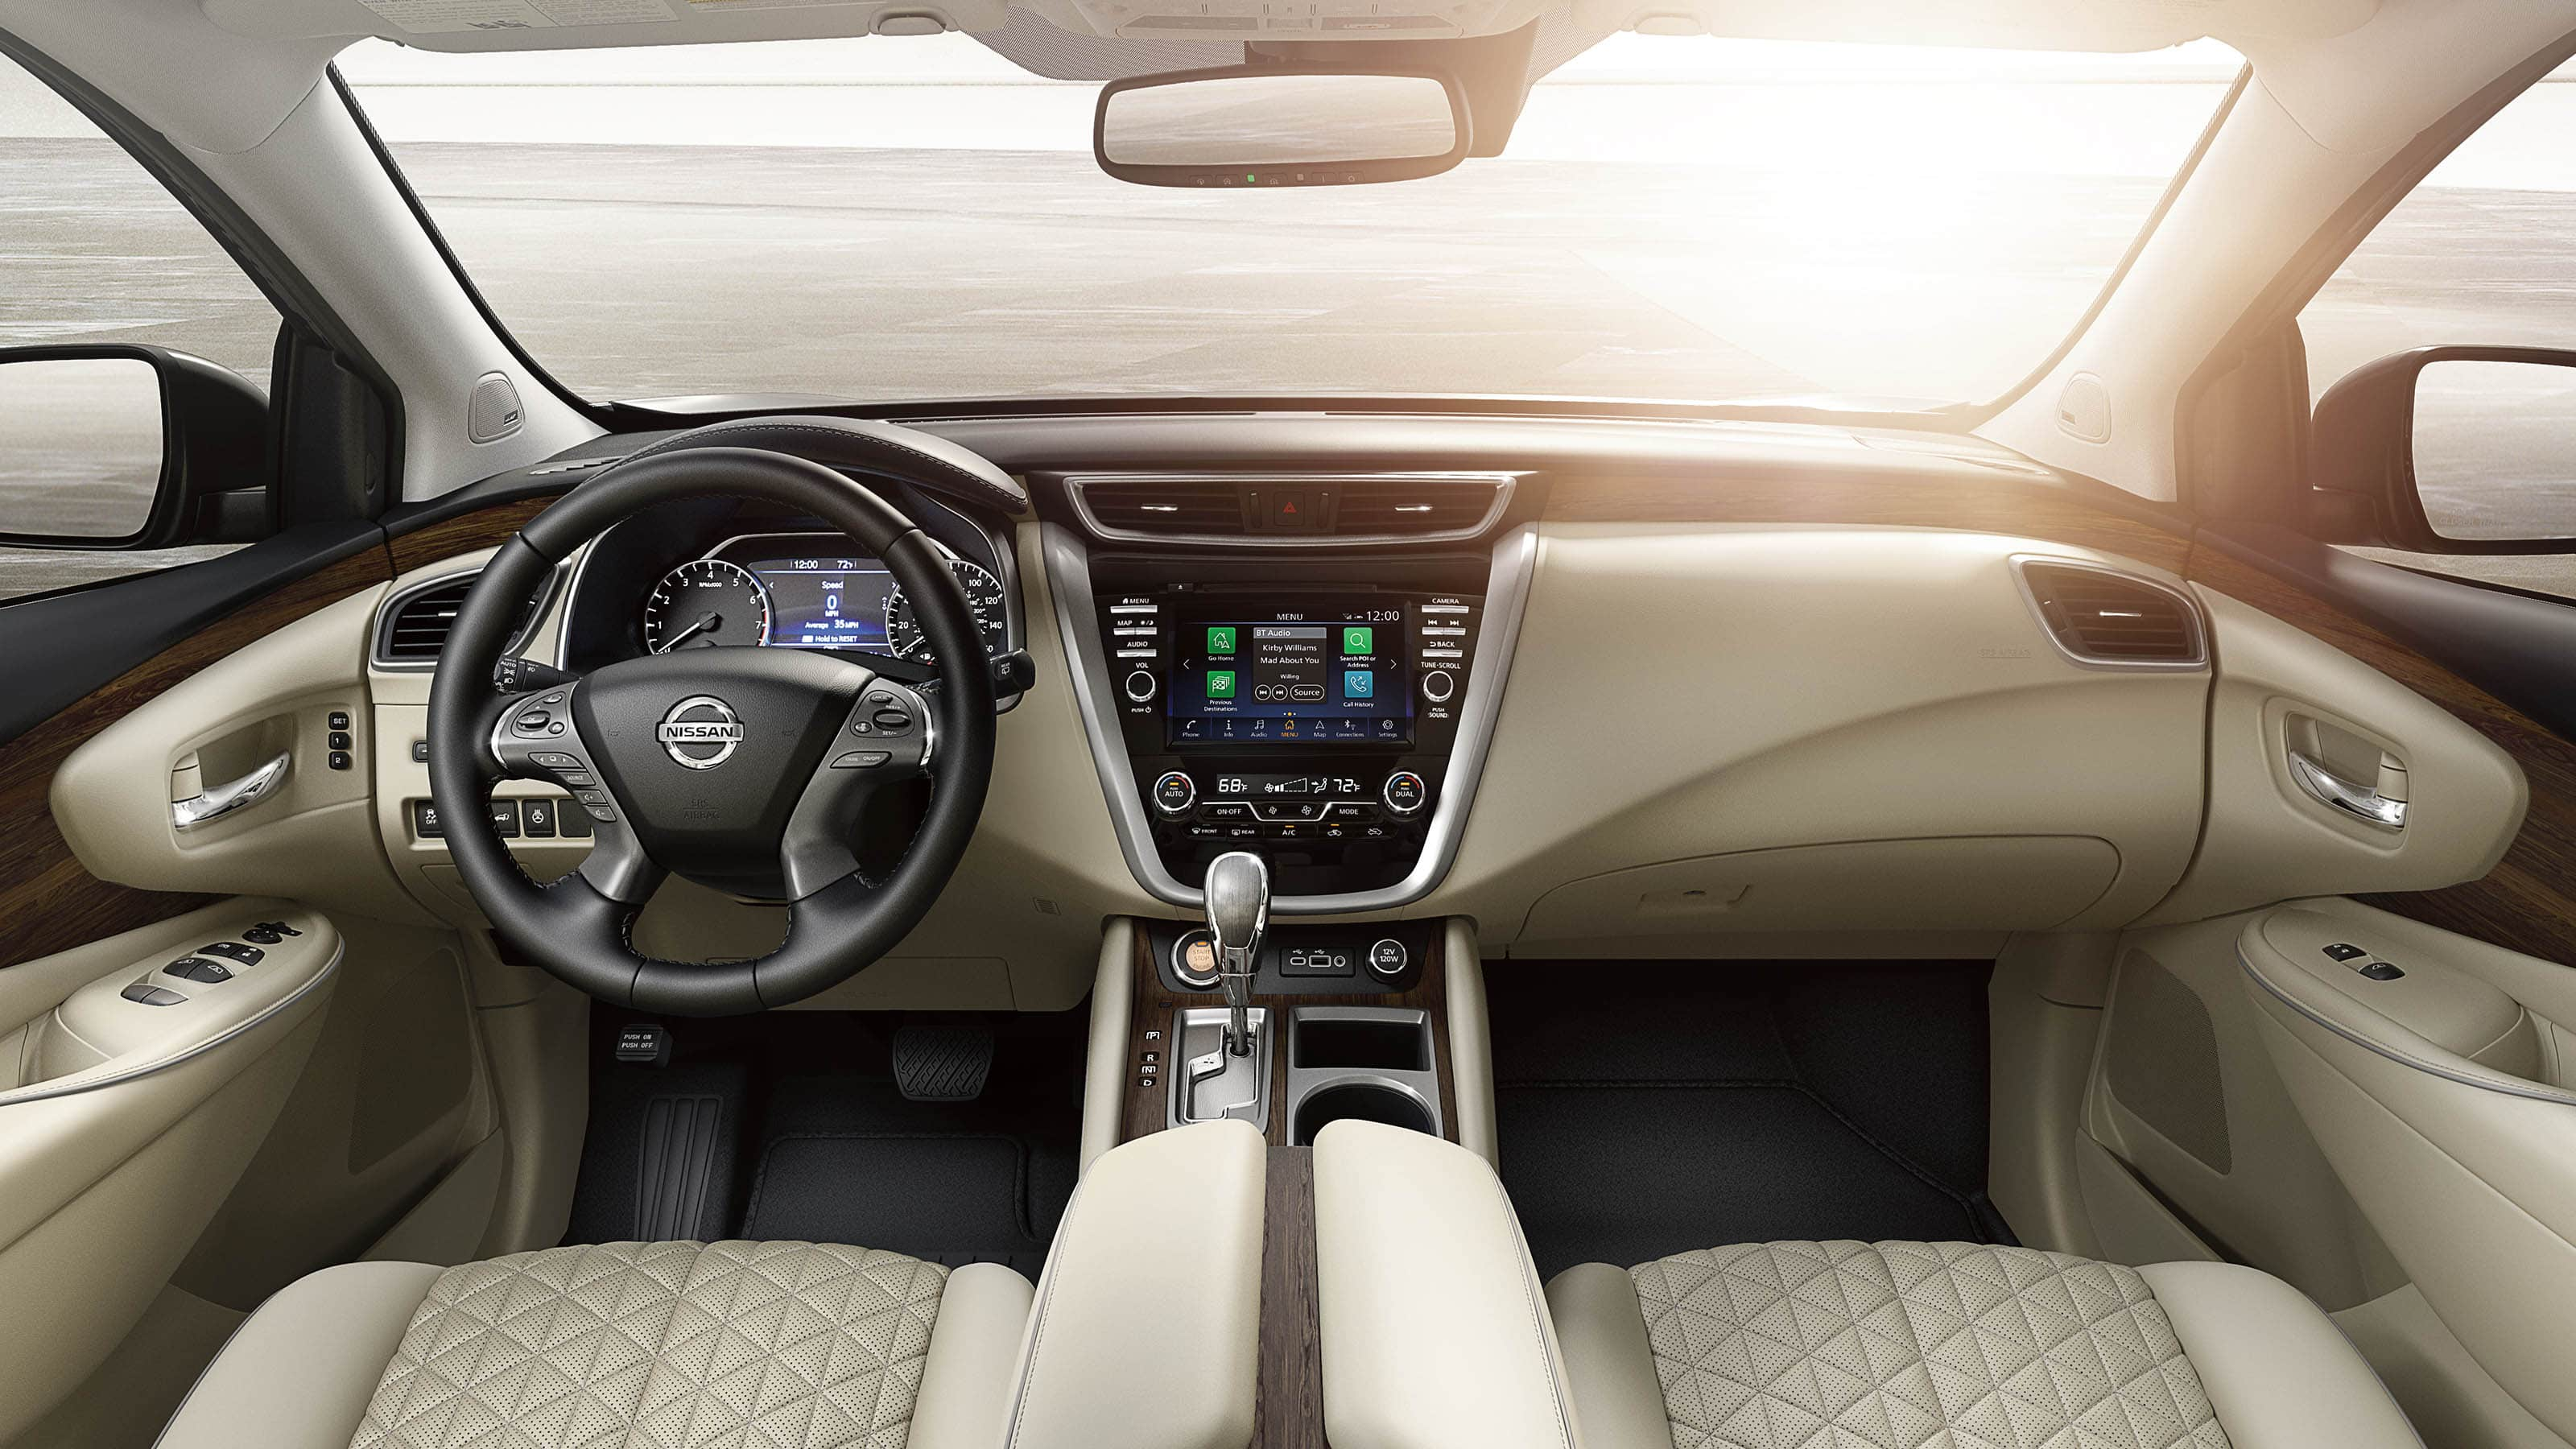 Interior of the 2019 Nissan Murano